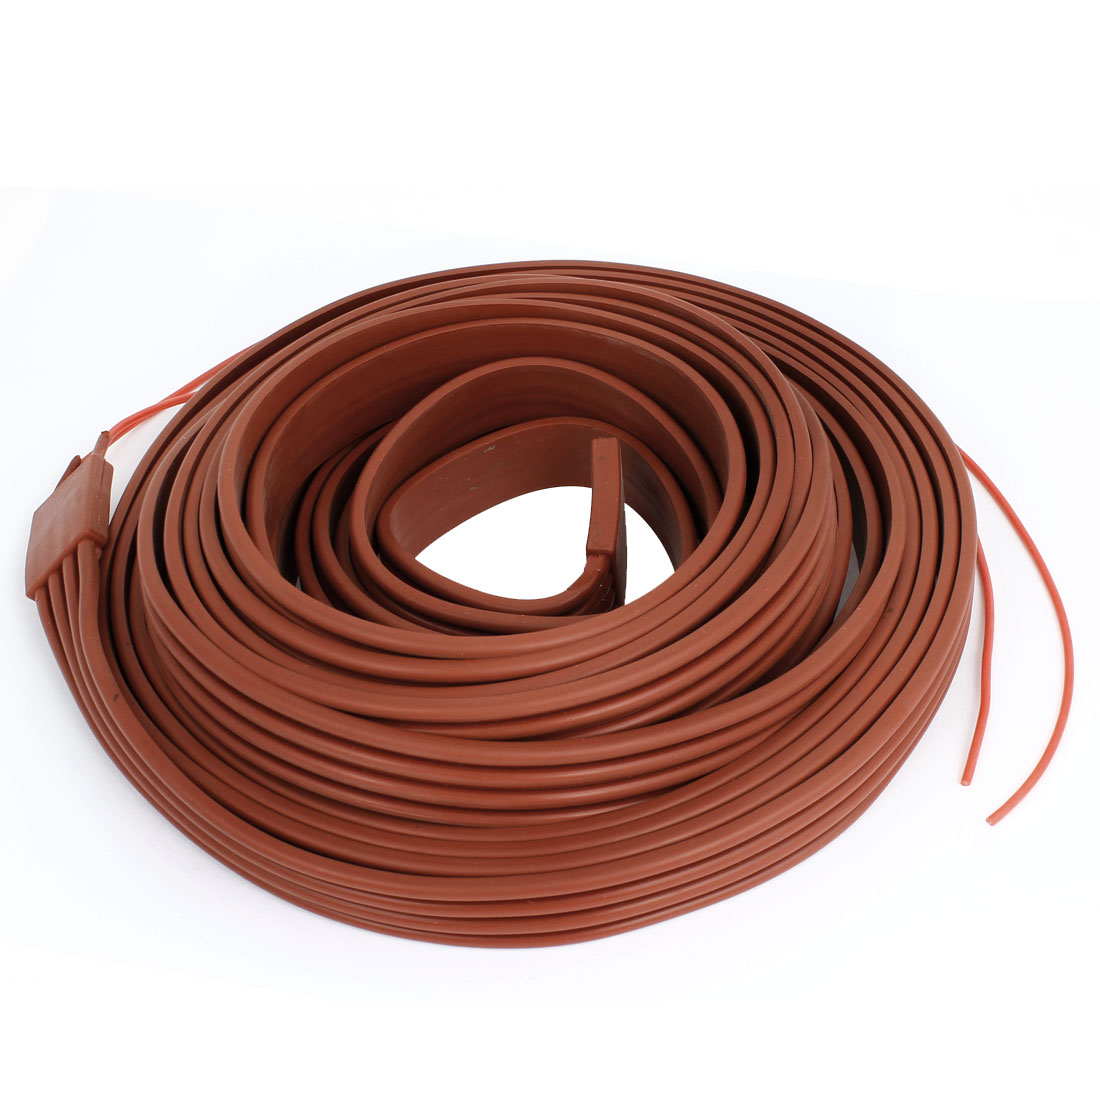 Red Flexible Silicone Waterproof Heater Strip Band 25mm Wide 10M Long 48V